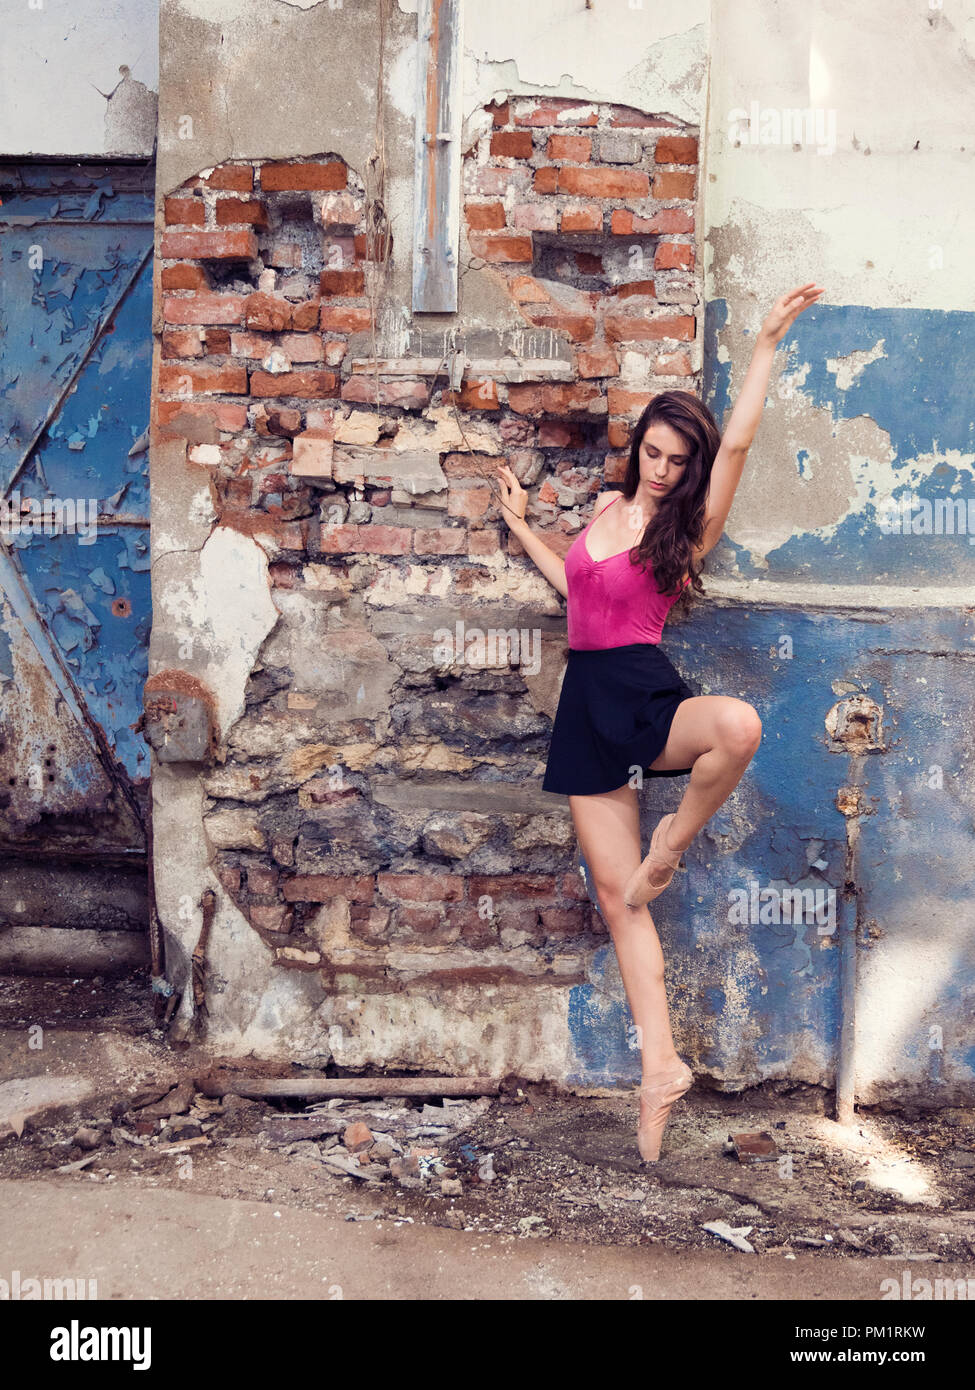 Girl on pointe against old wall, Istanbul - Stock Image